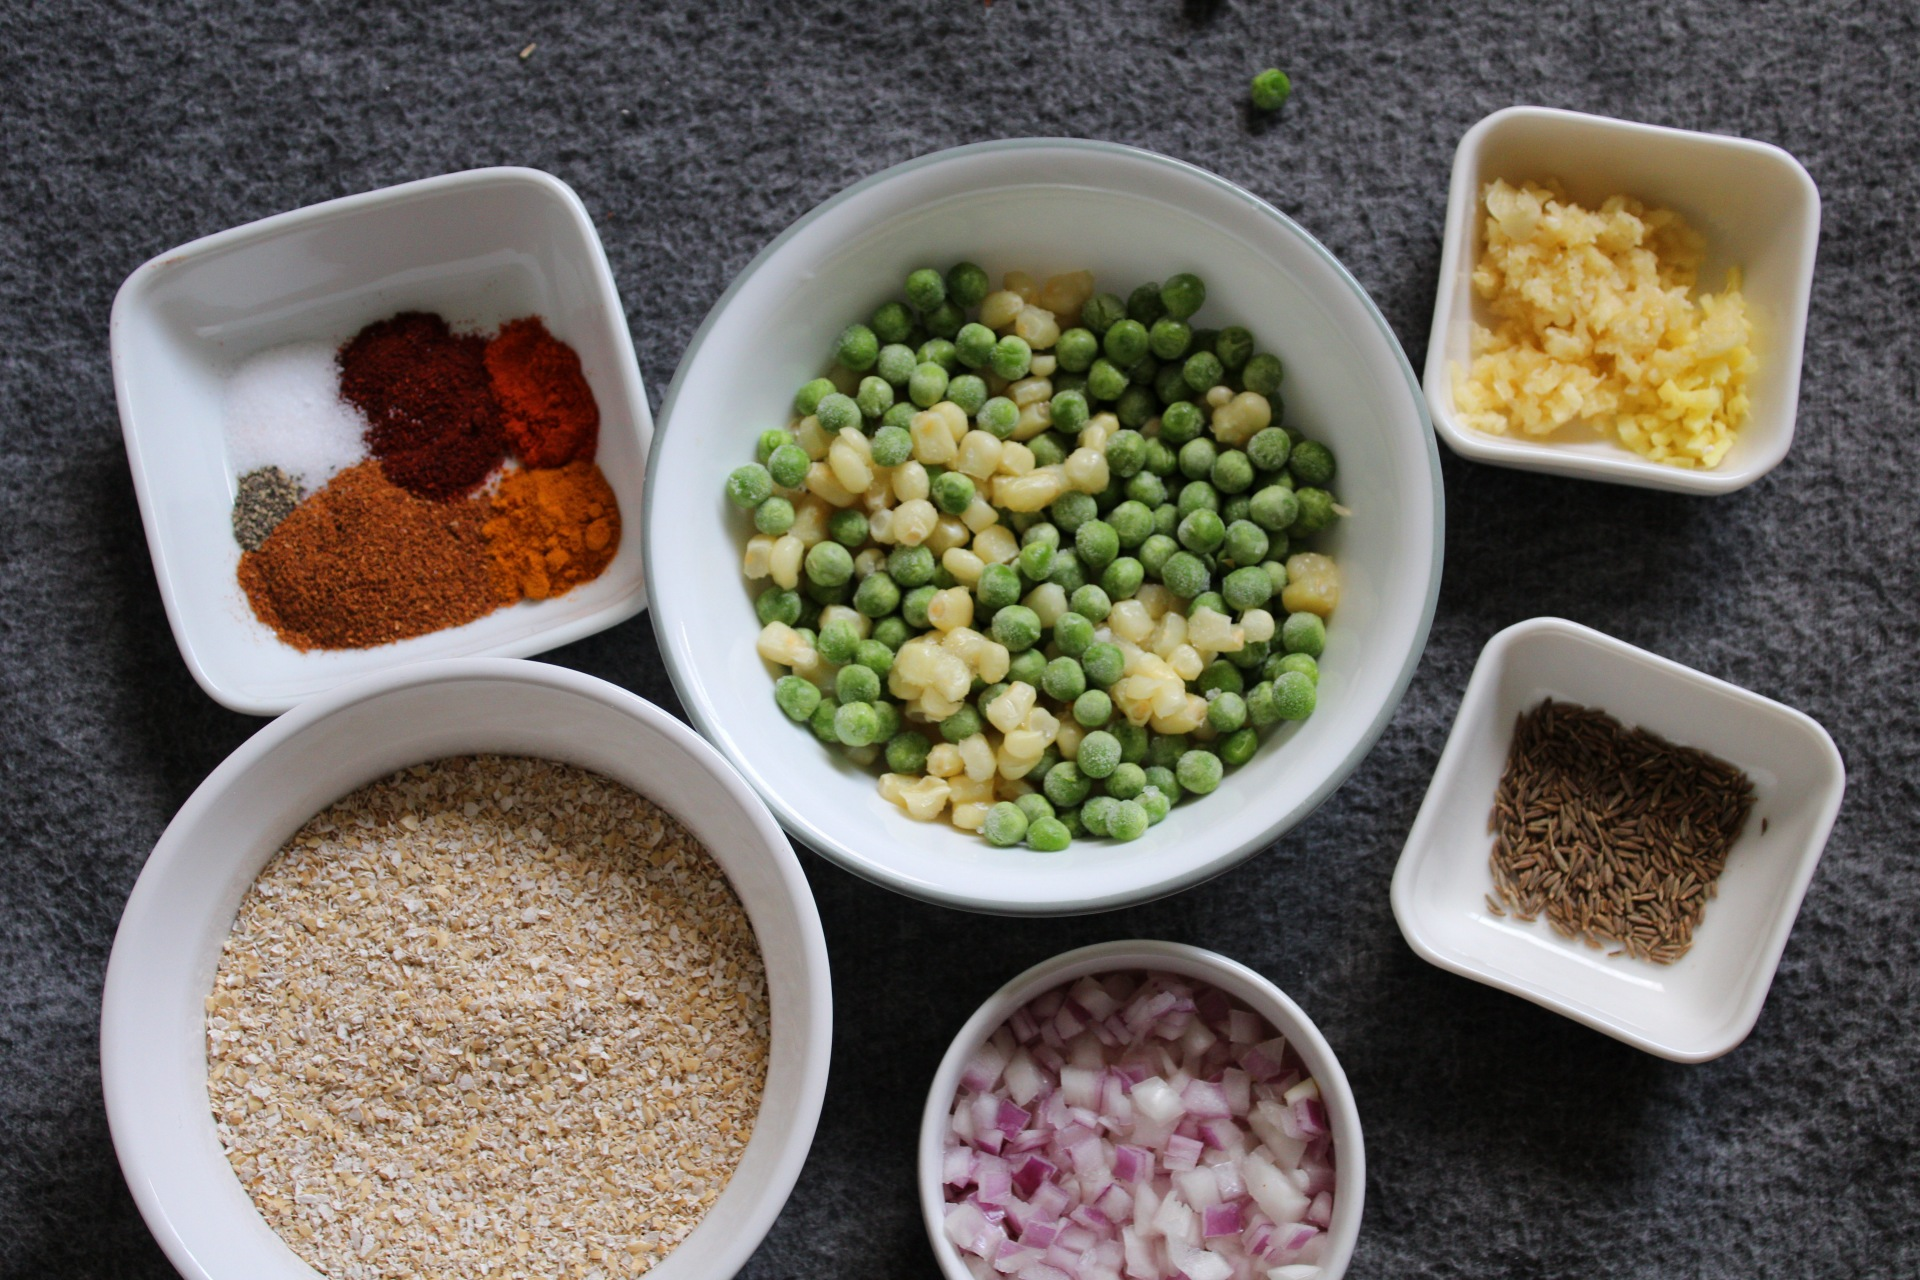 Frozen peas, frozen corn, garlic, cumin, onion, oats, and spices in small bowls